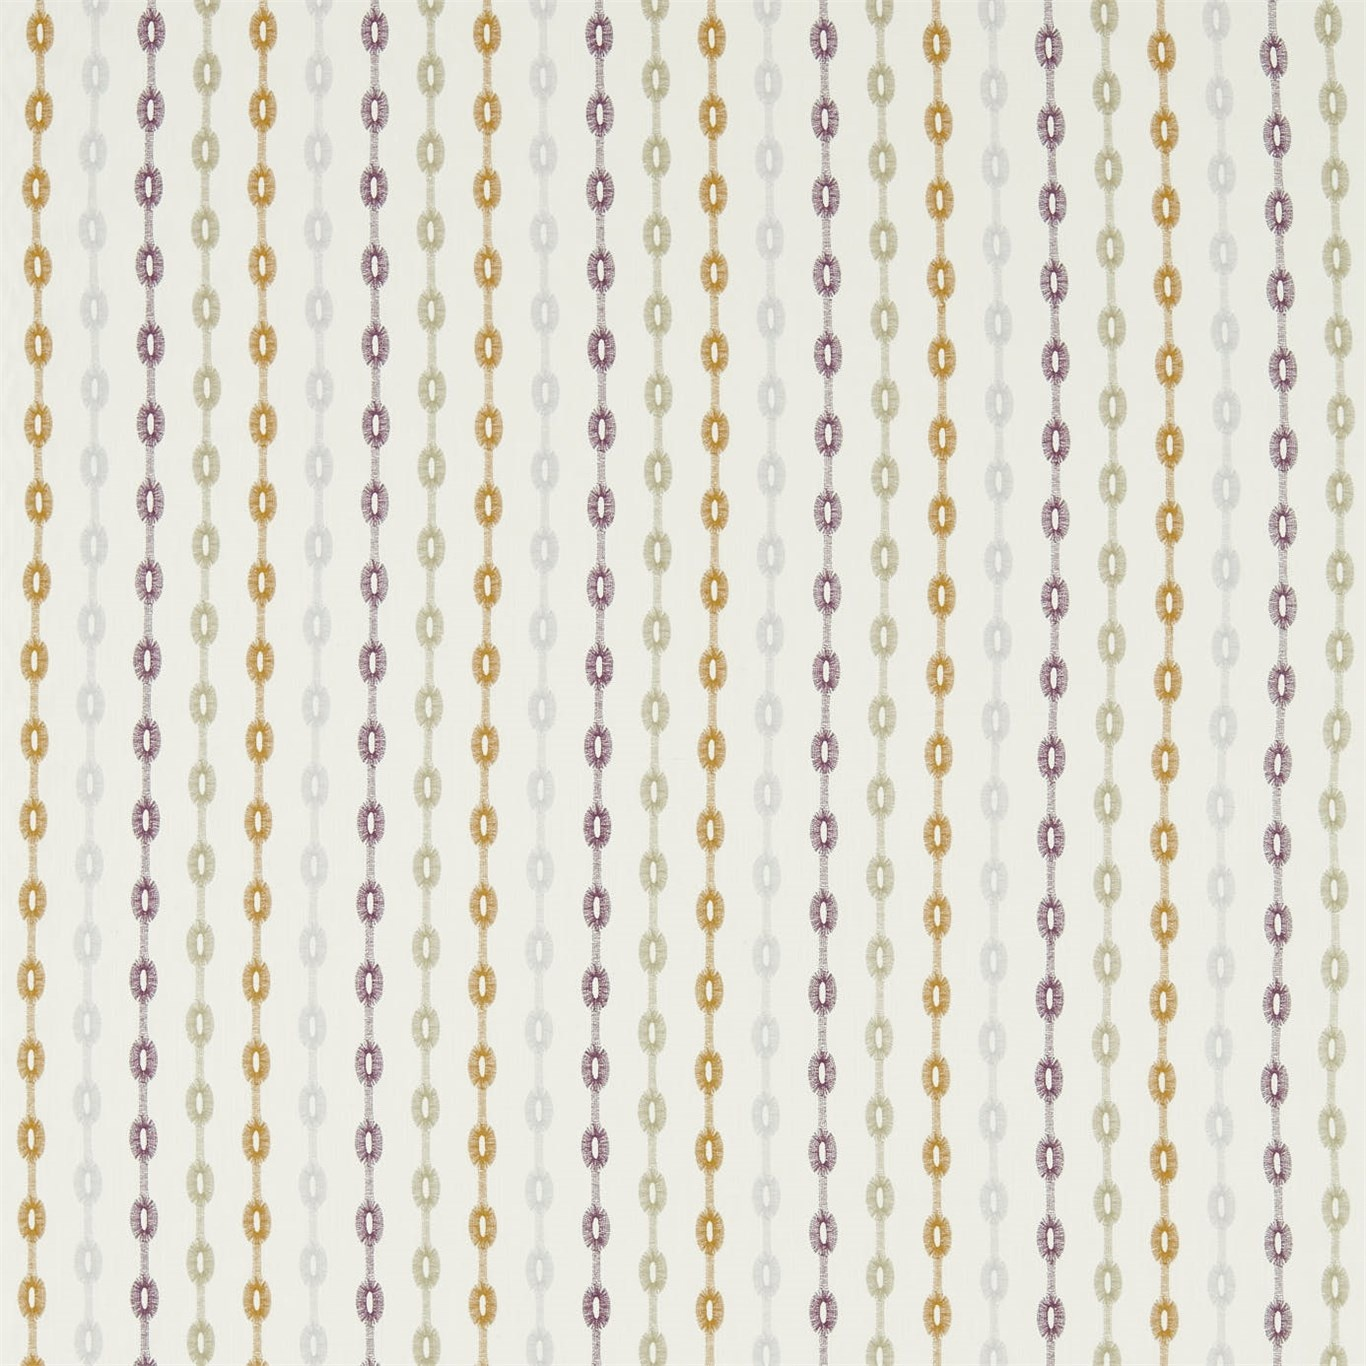 Image of Sanderson Home Shaker Stripe Fig/Olive Curtain Fabric 235892